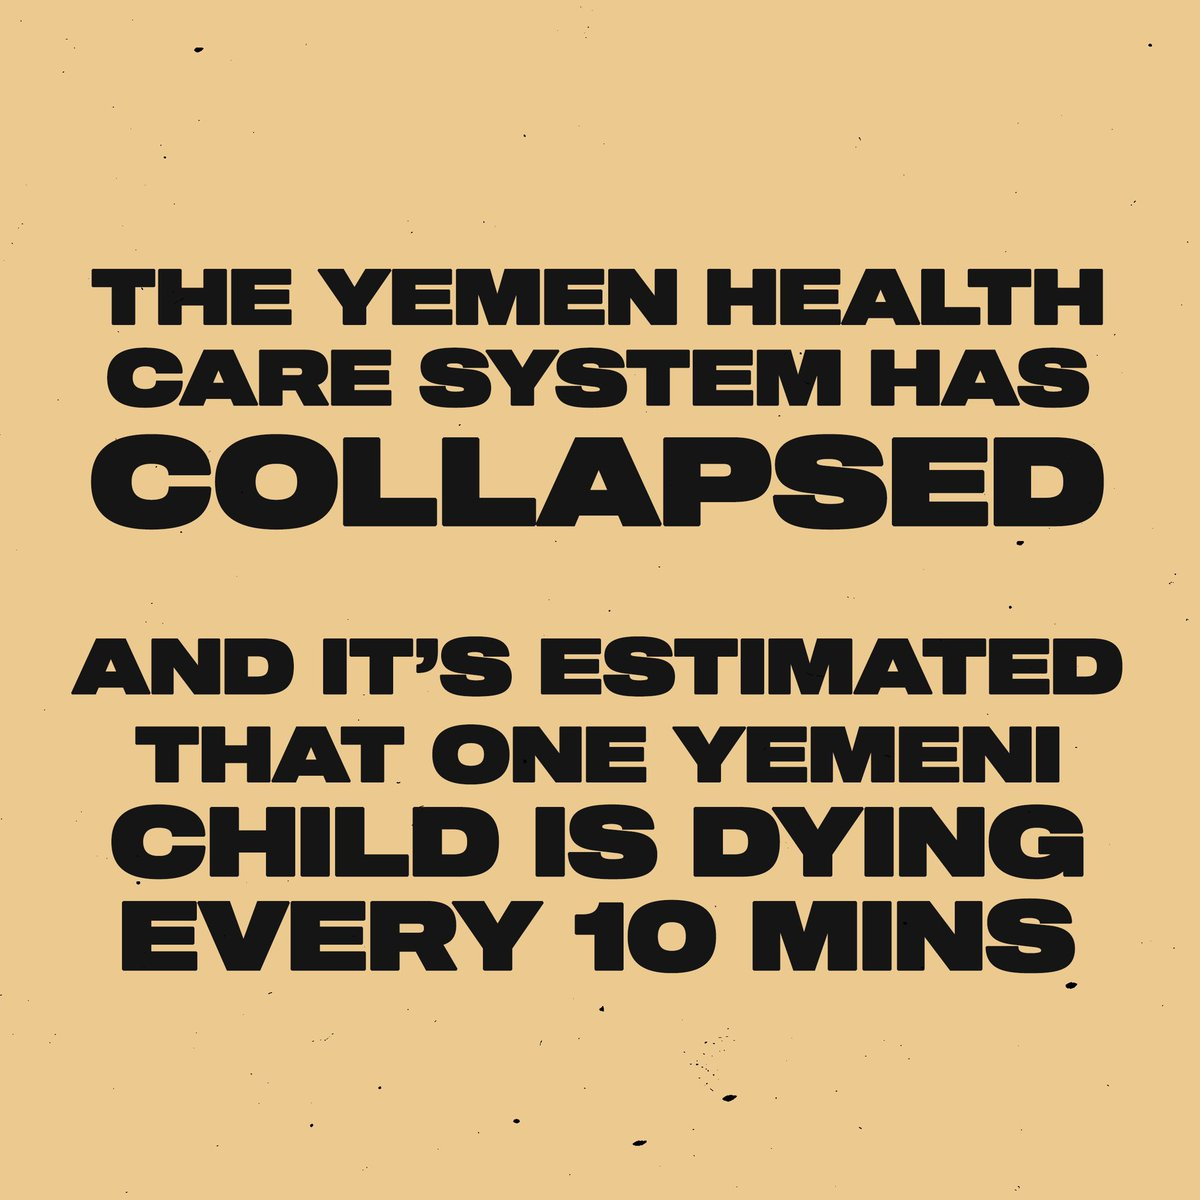 H On Twitter Please Be Sure To Share This Information About The Crisis In Yemen They Absolutely Need Our Help Right Now By Means Of Donations And Awareness I Have Made A